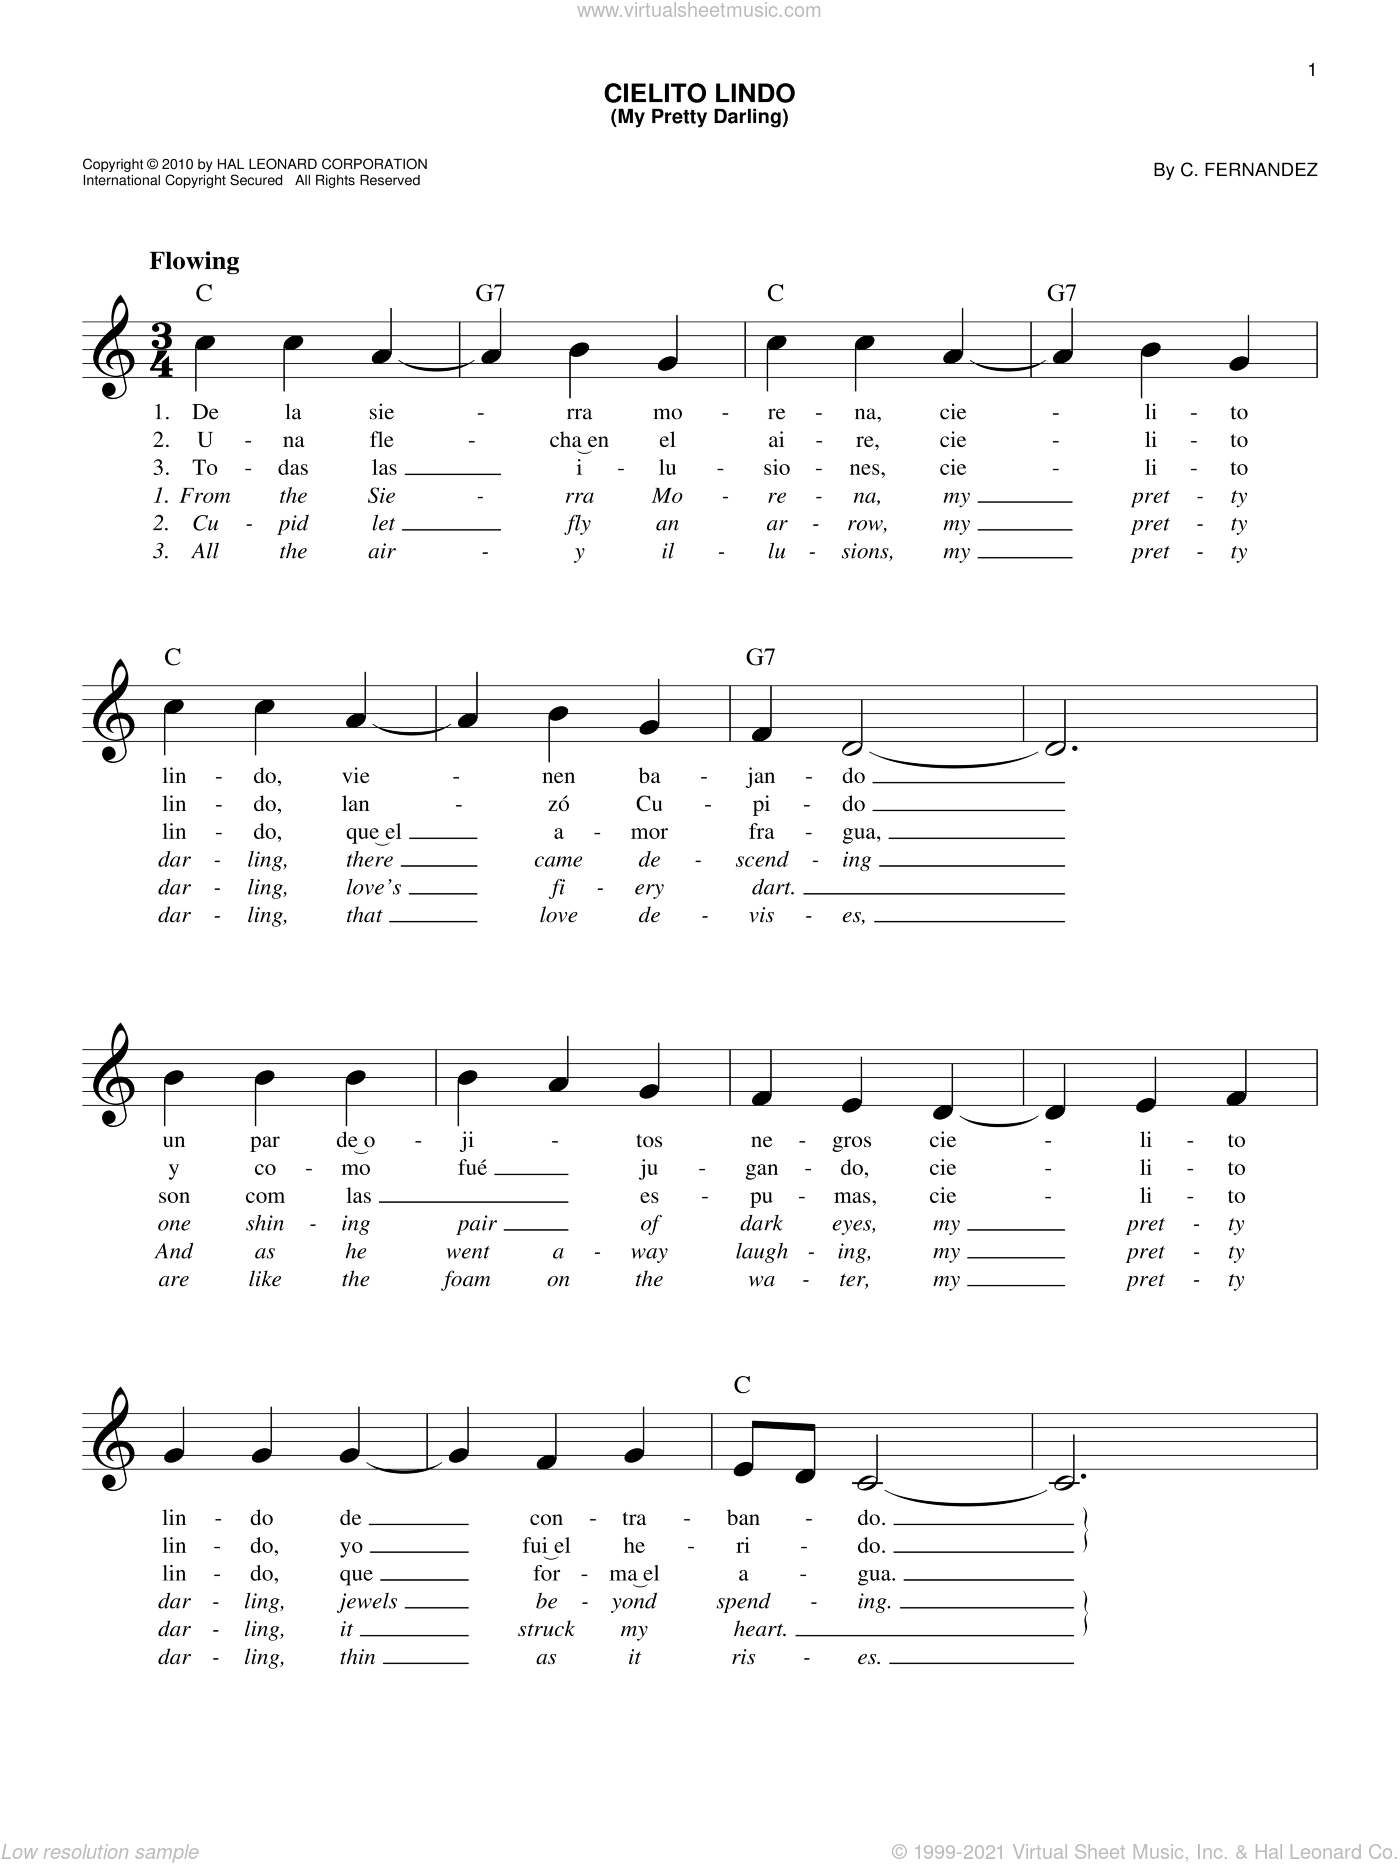 Cielito Lindo (My Pretty Darling) sheet music for voice and other instruments (fake book) by Cortez Fernandez, intermediate skill level